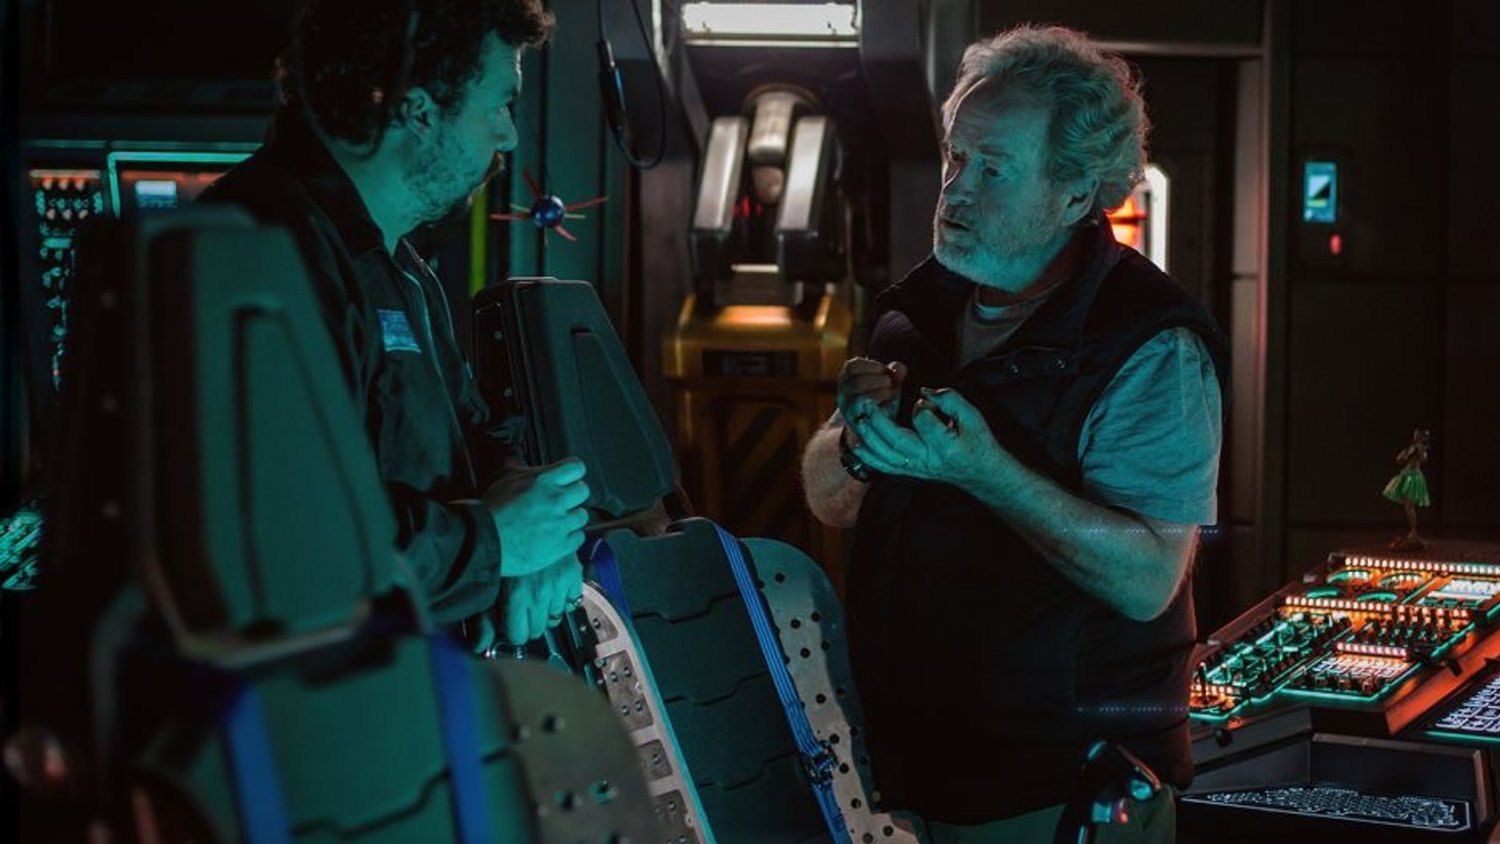 Ridley Scott Reveals the Title of His Next Alien Film and Starts to Spill Too Much Information